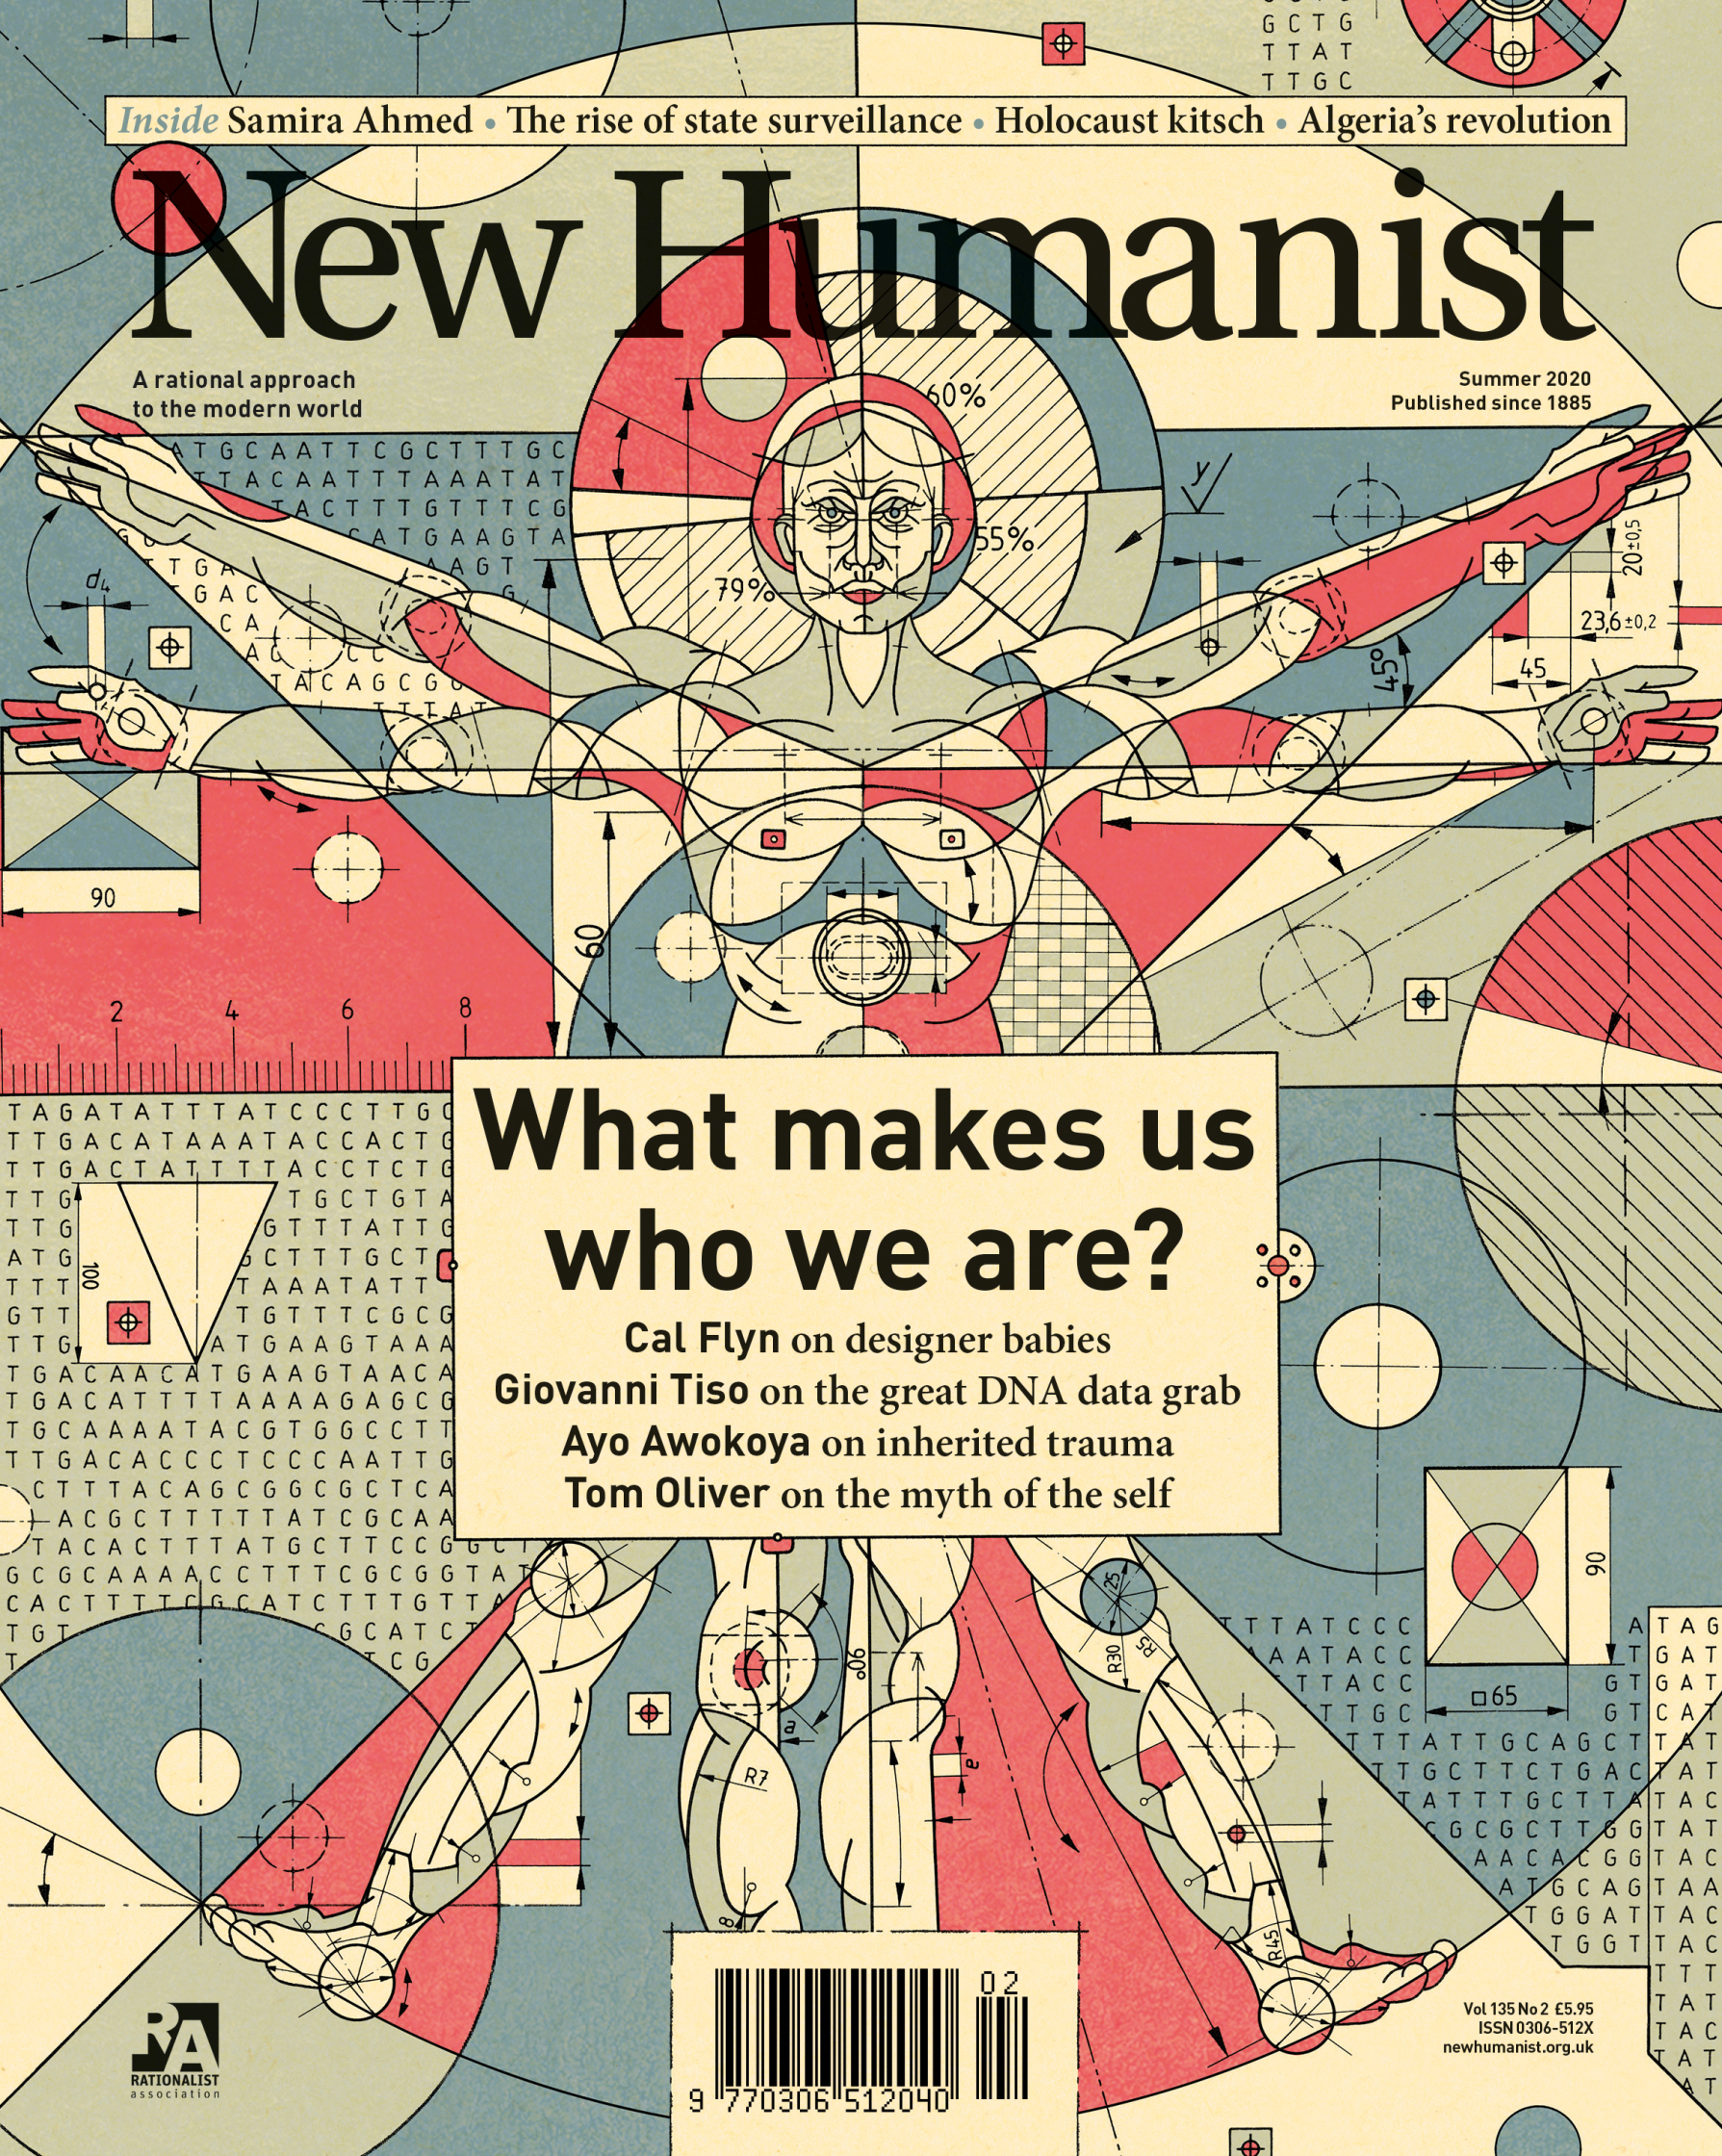 New Humanist_What makes us who we are.jpg